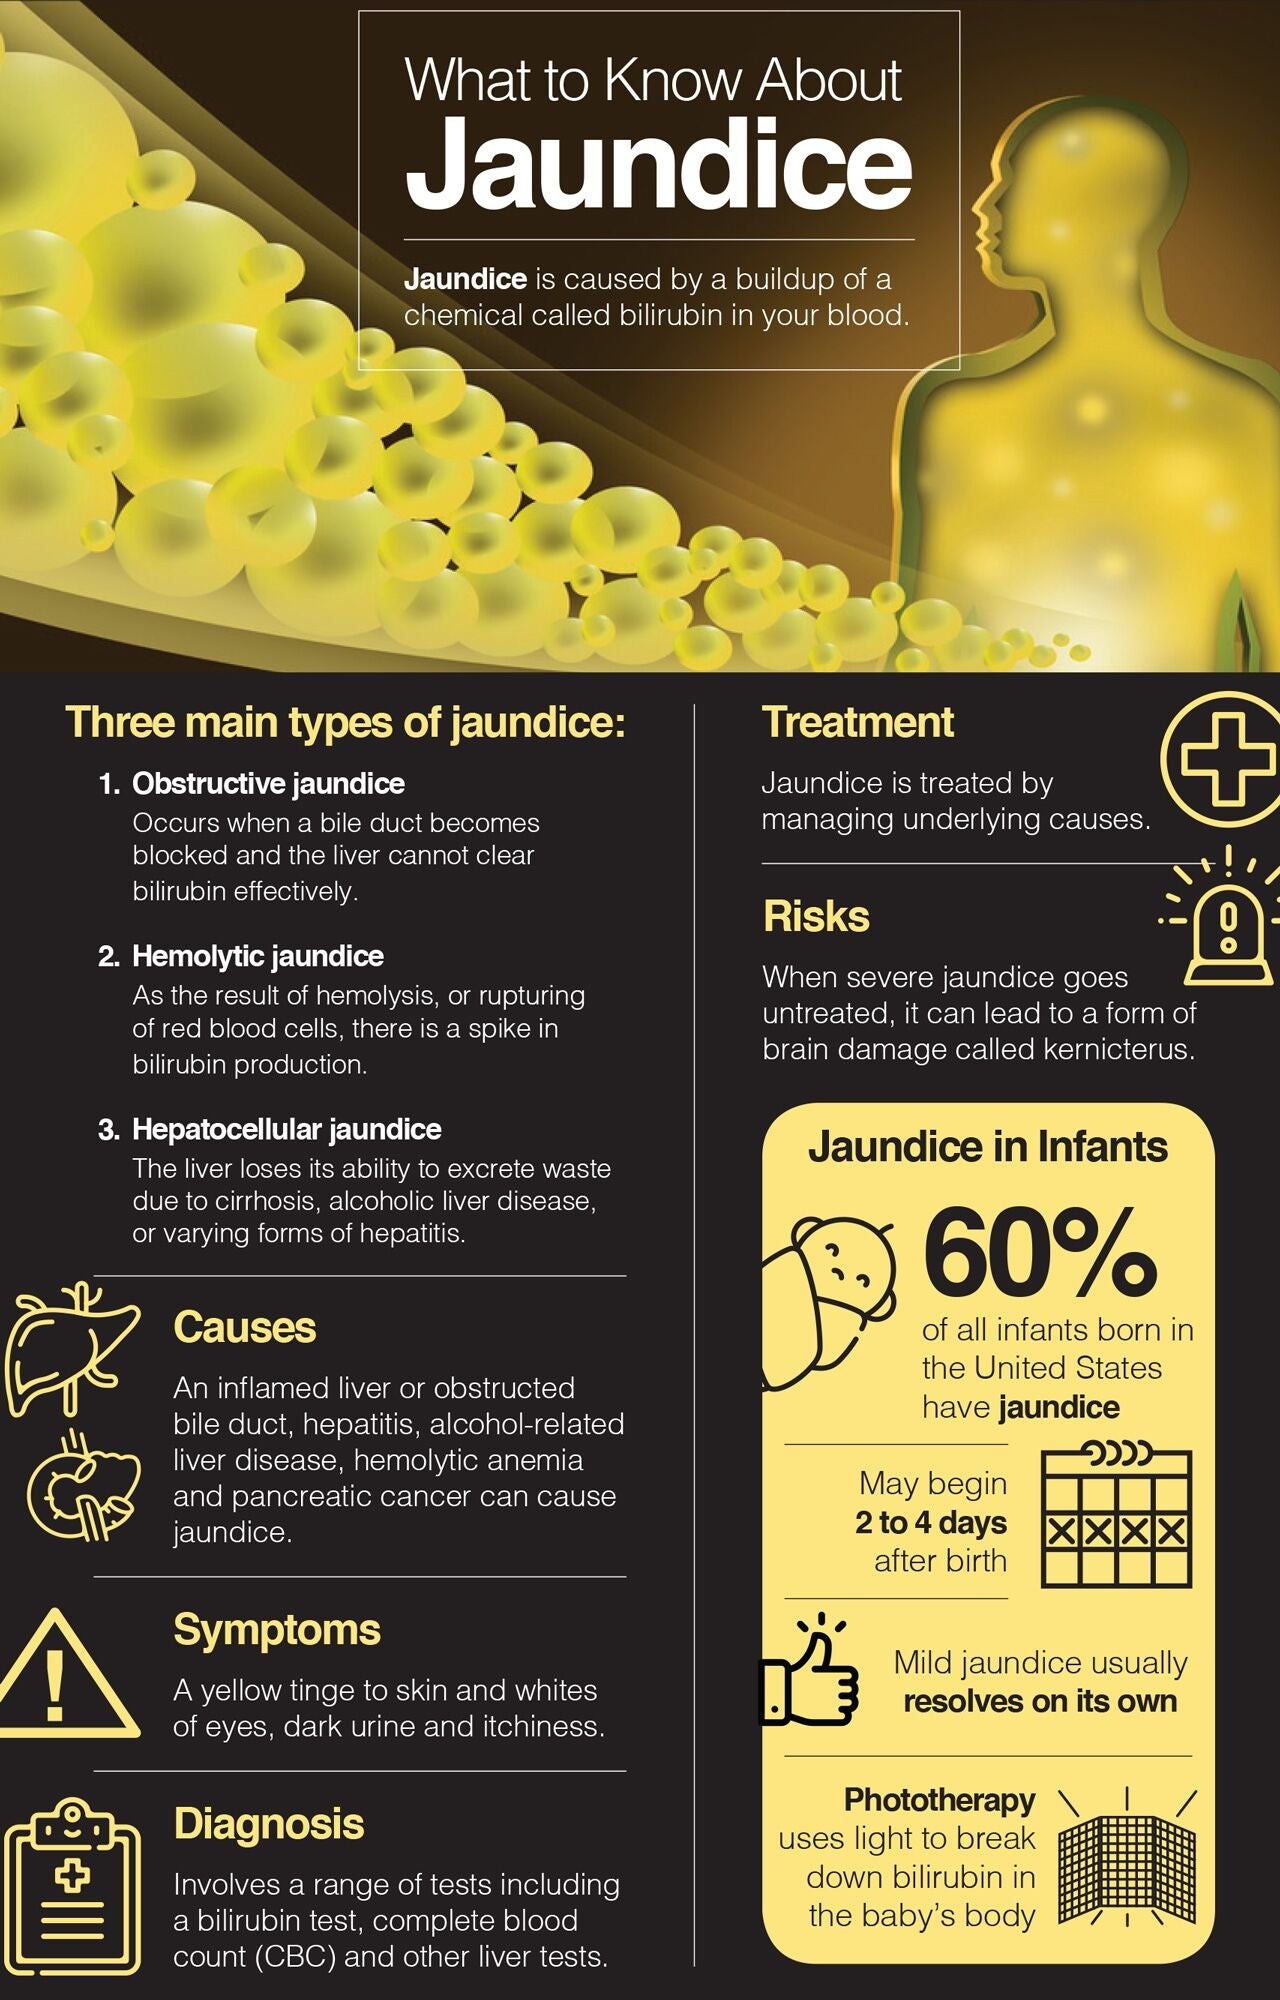 What to know about jaundice